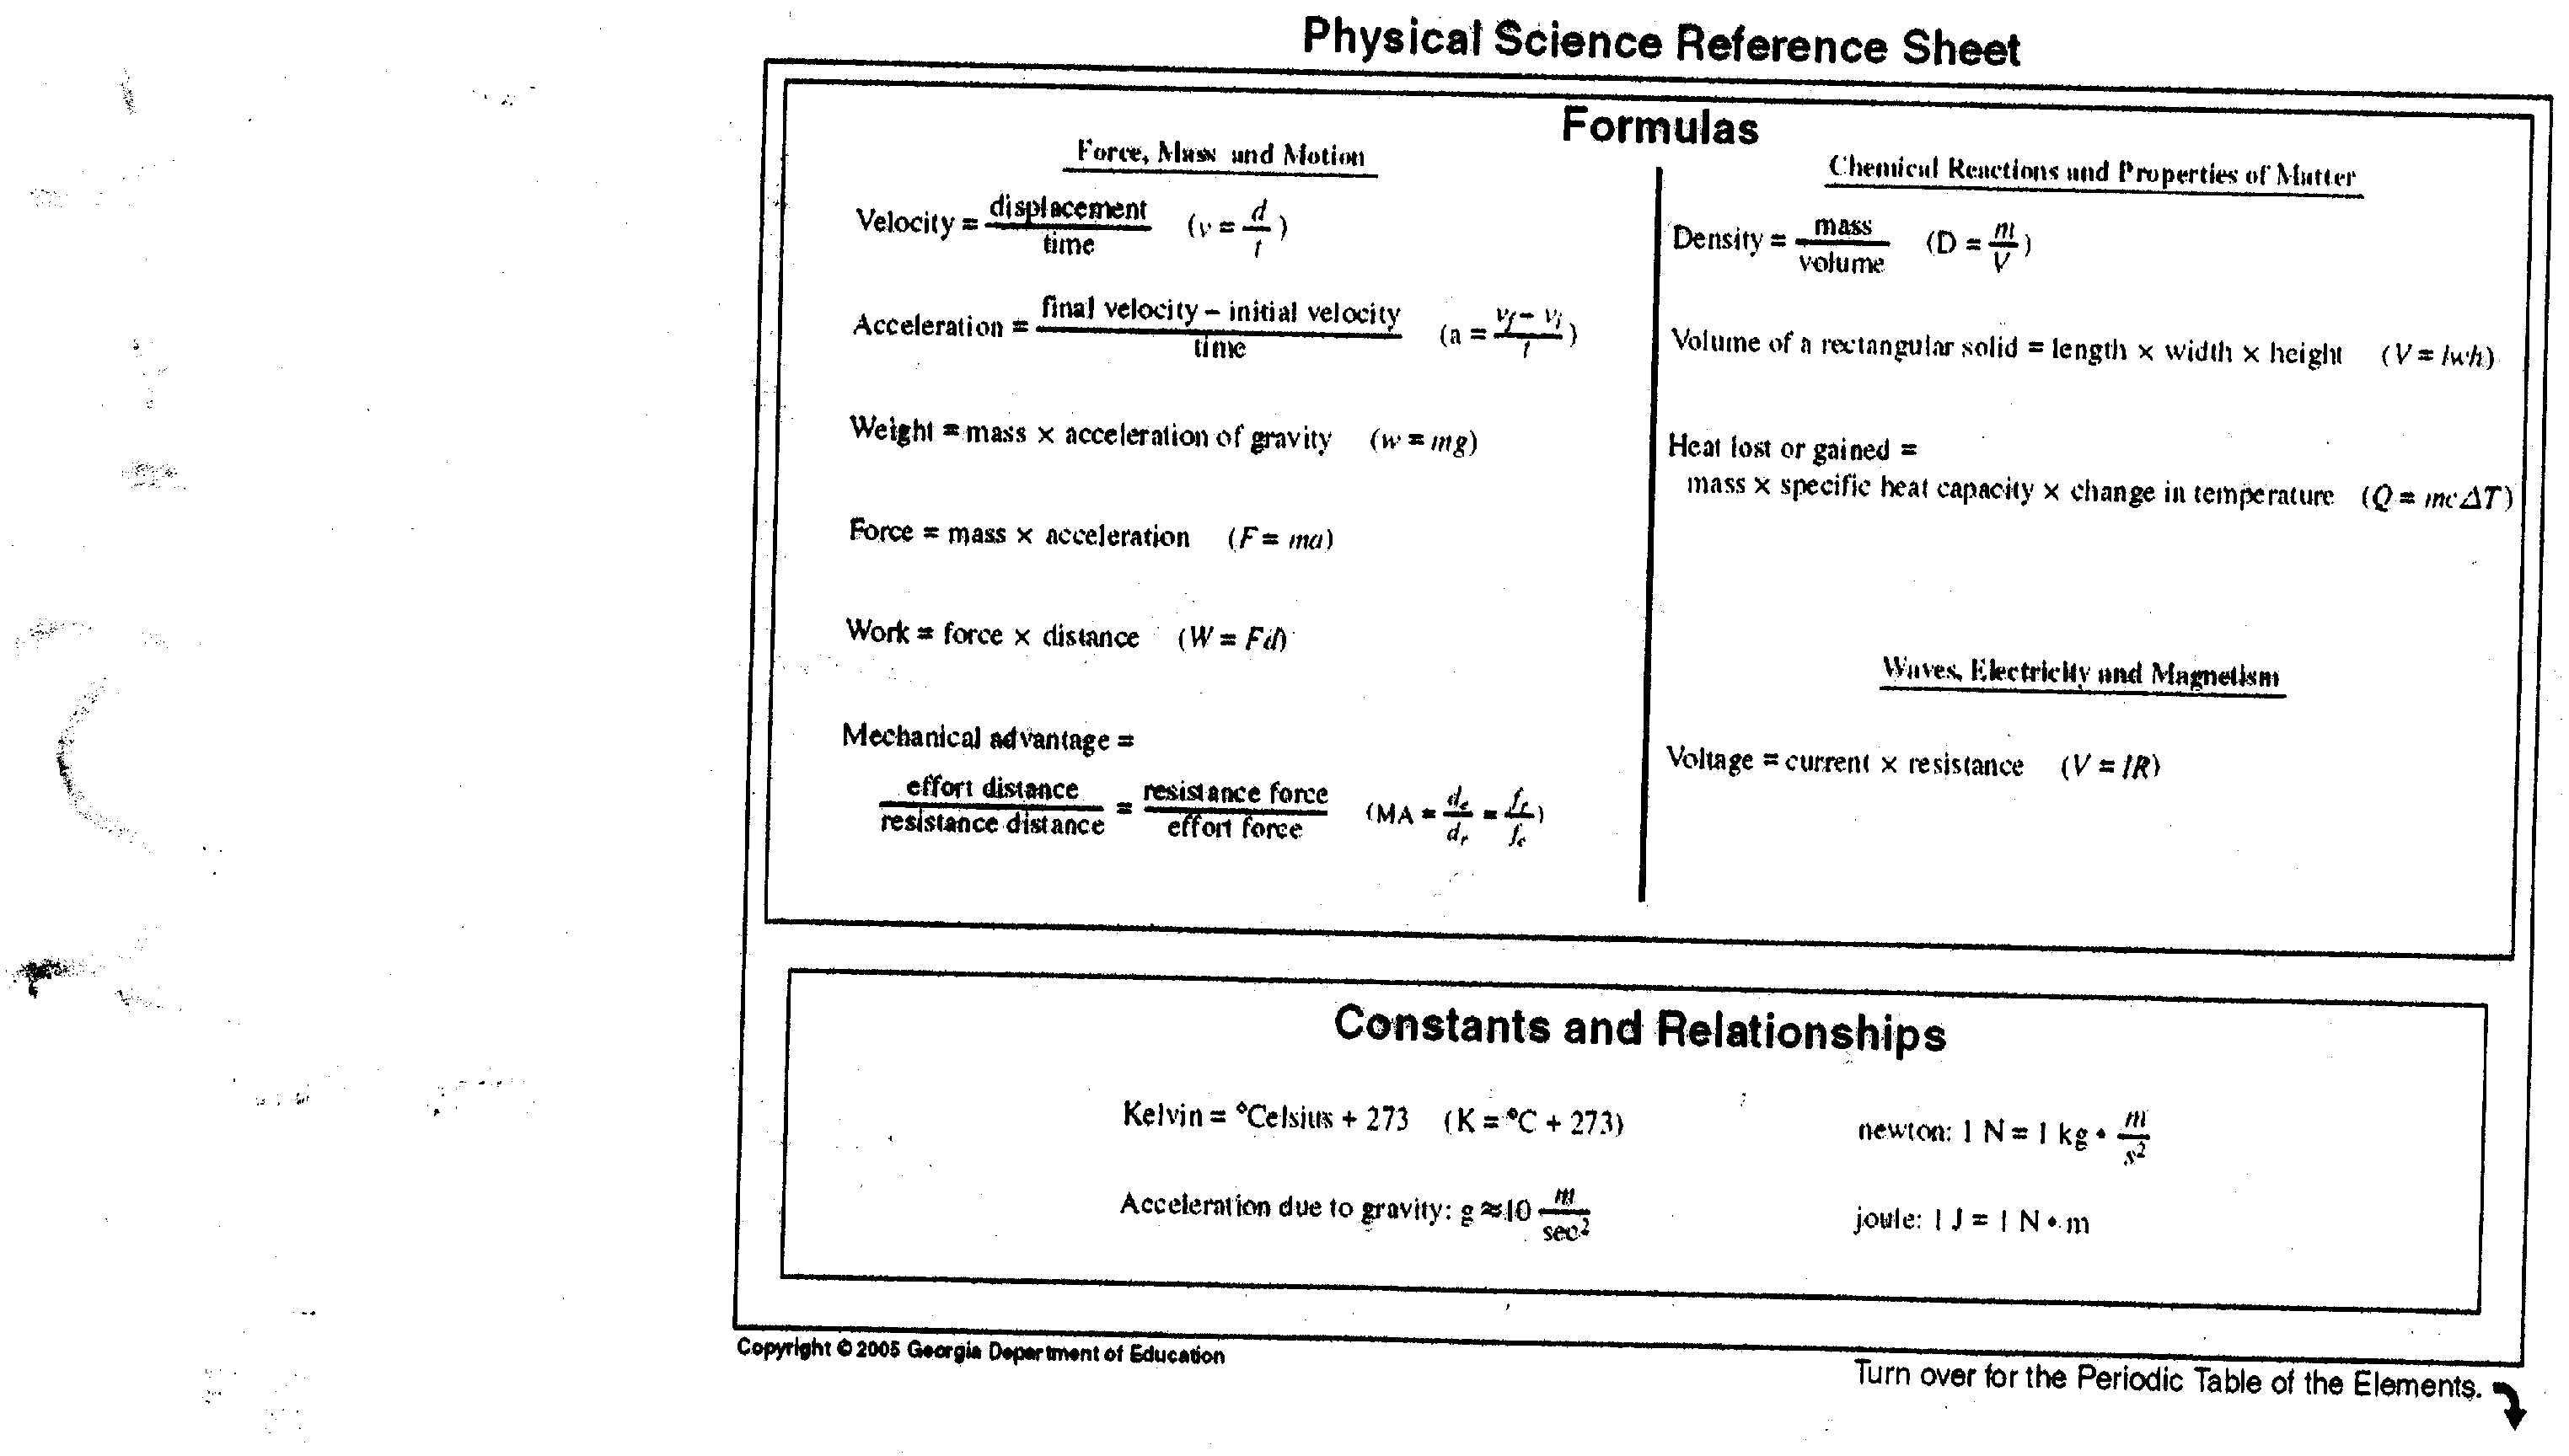 Worksheet For Physical Science Formulas Worksheet Best